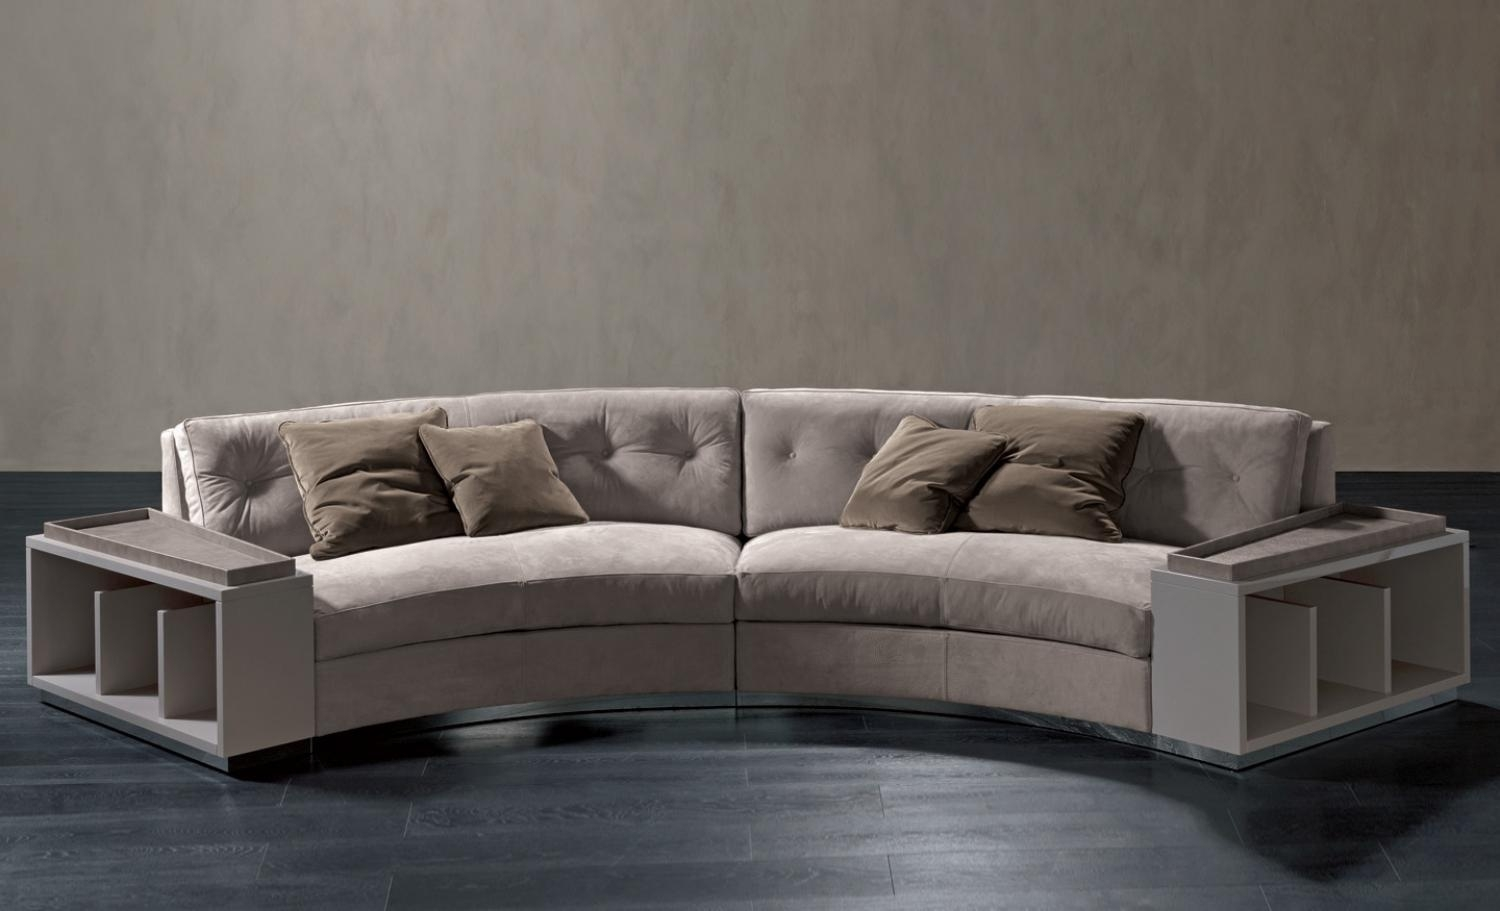 Semi-Circular Sofa In Leather Circus, Rugiano - Luxury Furniture Mr intended for Semicircular Sofas (Image 8 of 10)